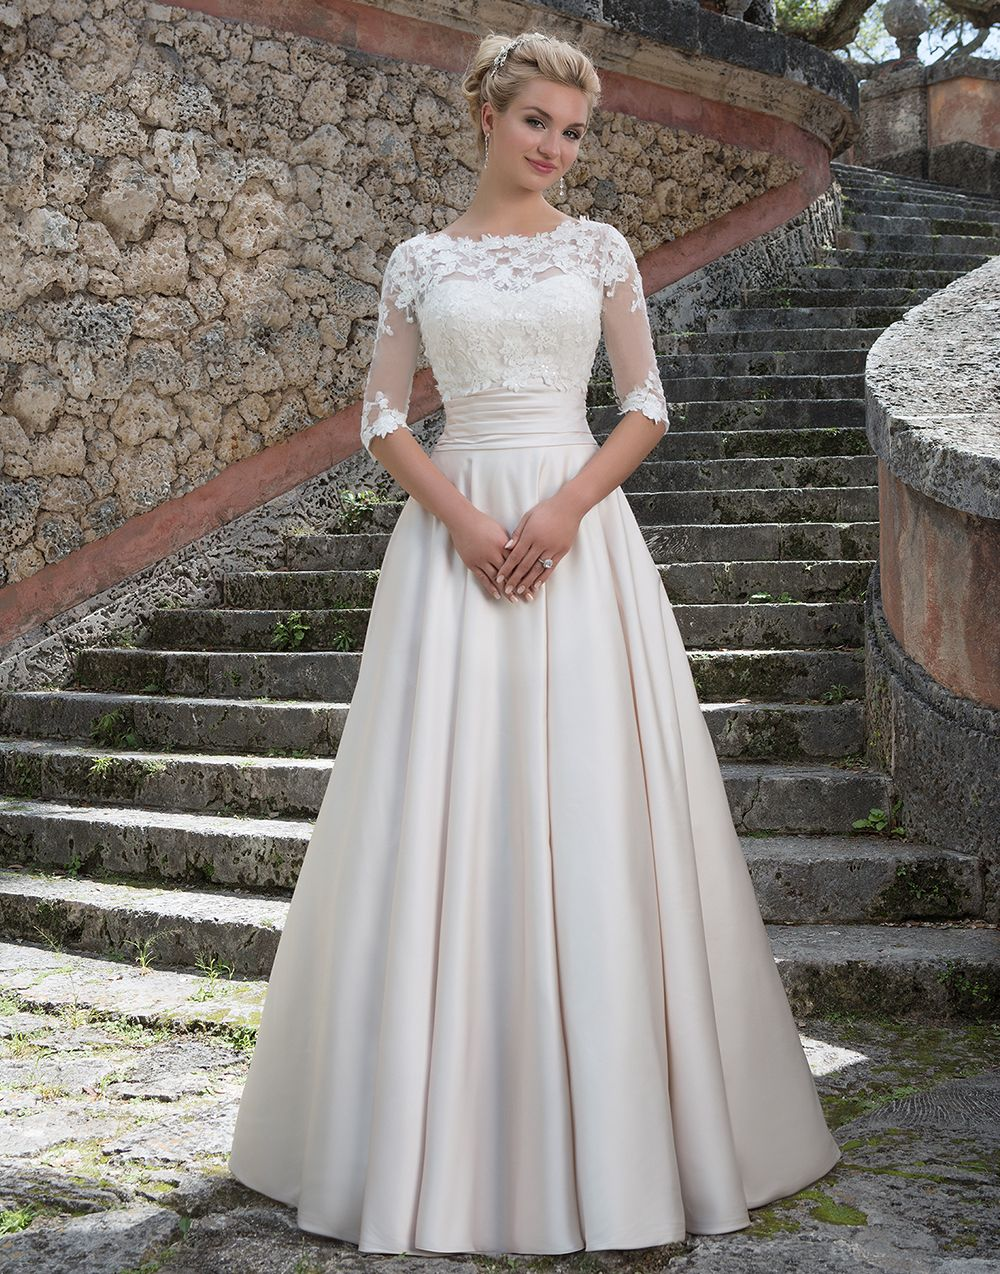 Sincerity wedding dress style 3877 | This Grace Kelly inspired ball ...